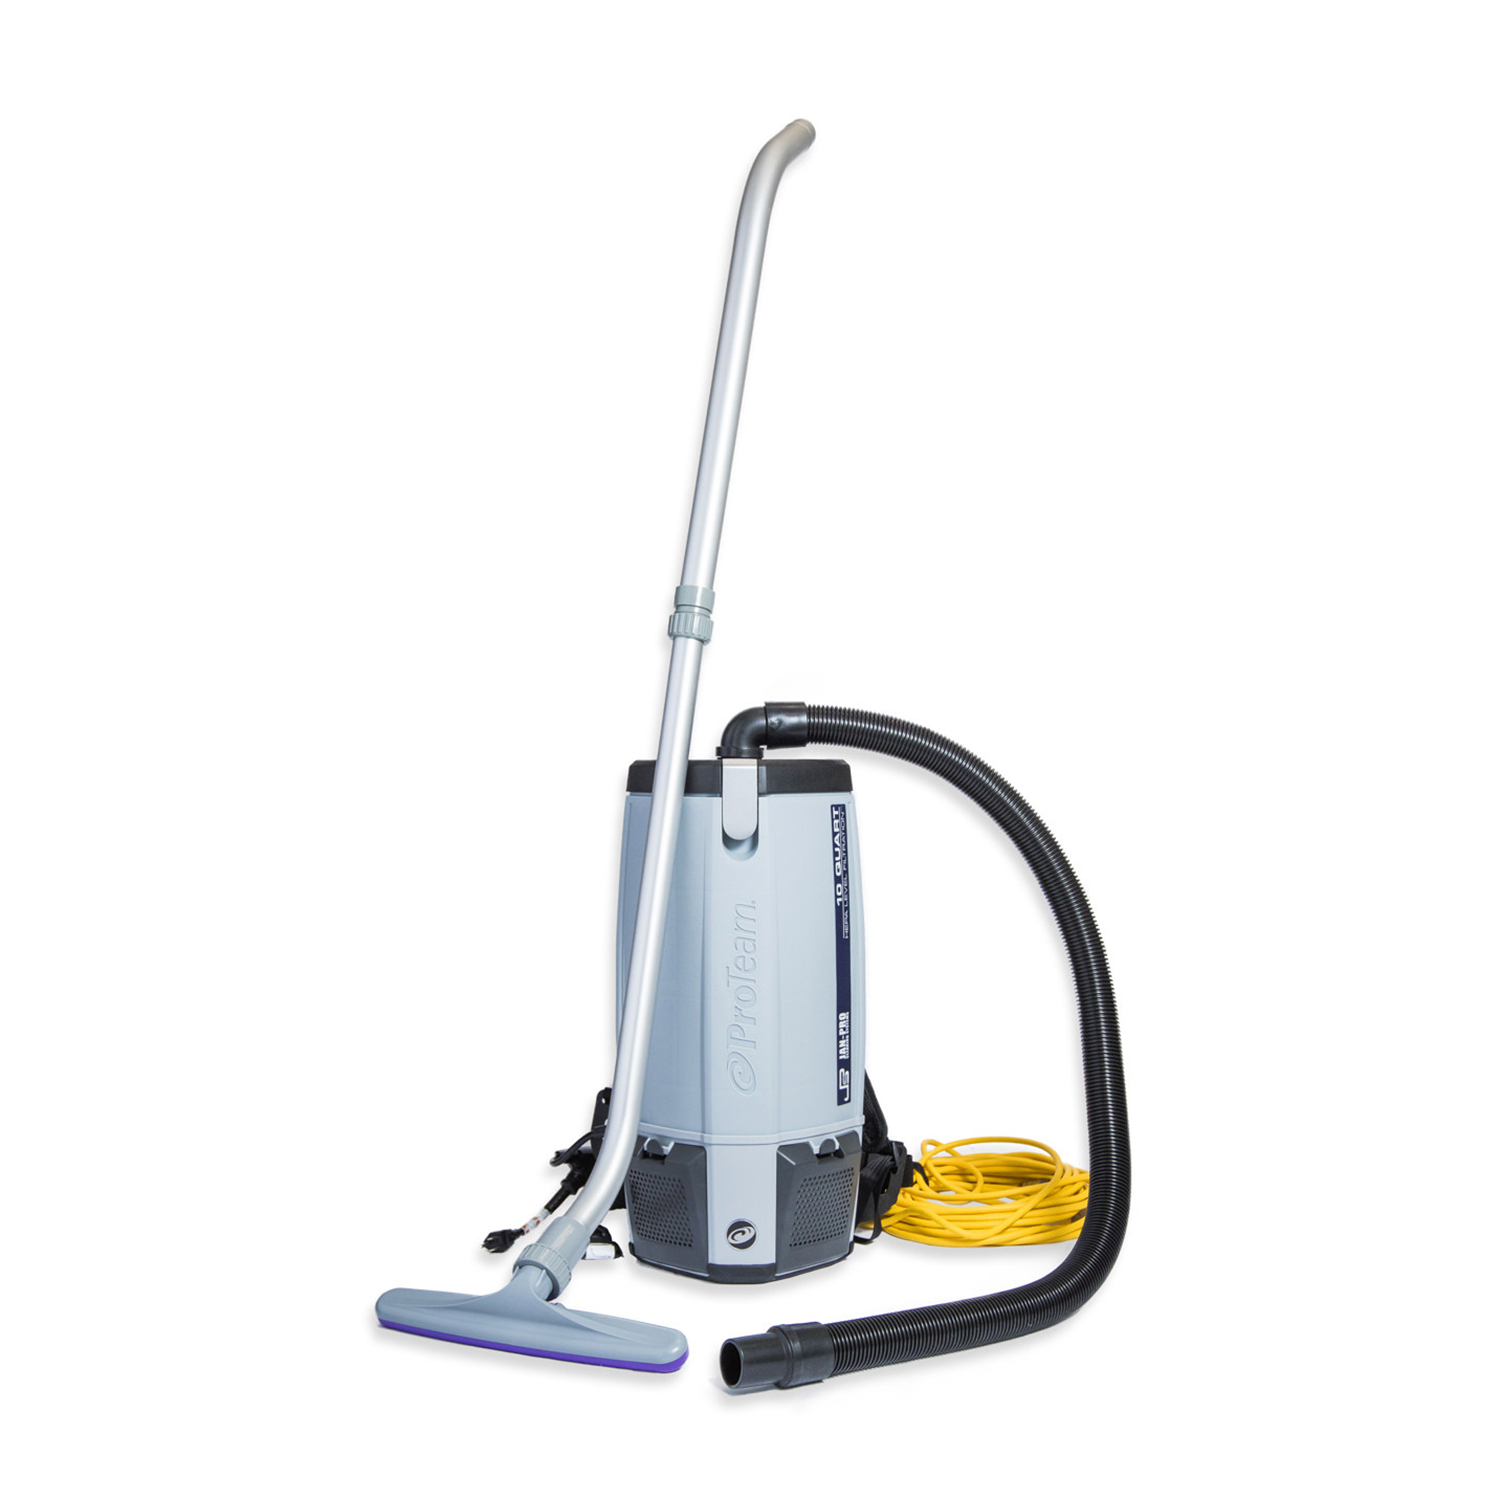 VACUUM CLEANER PRODUCT PHOTOGRAPHY